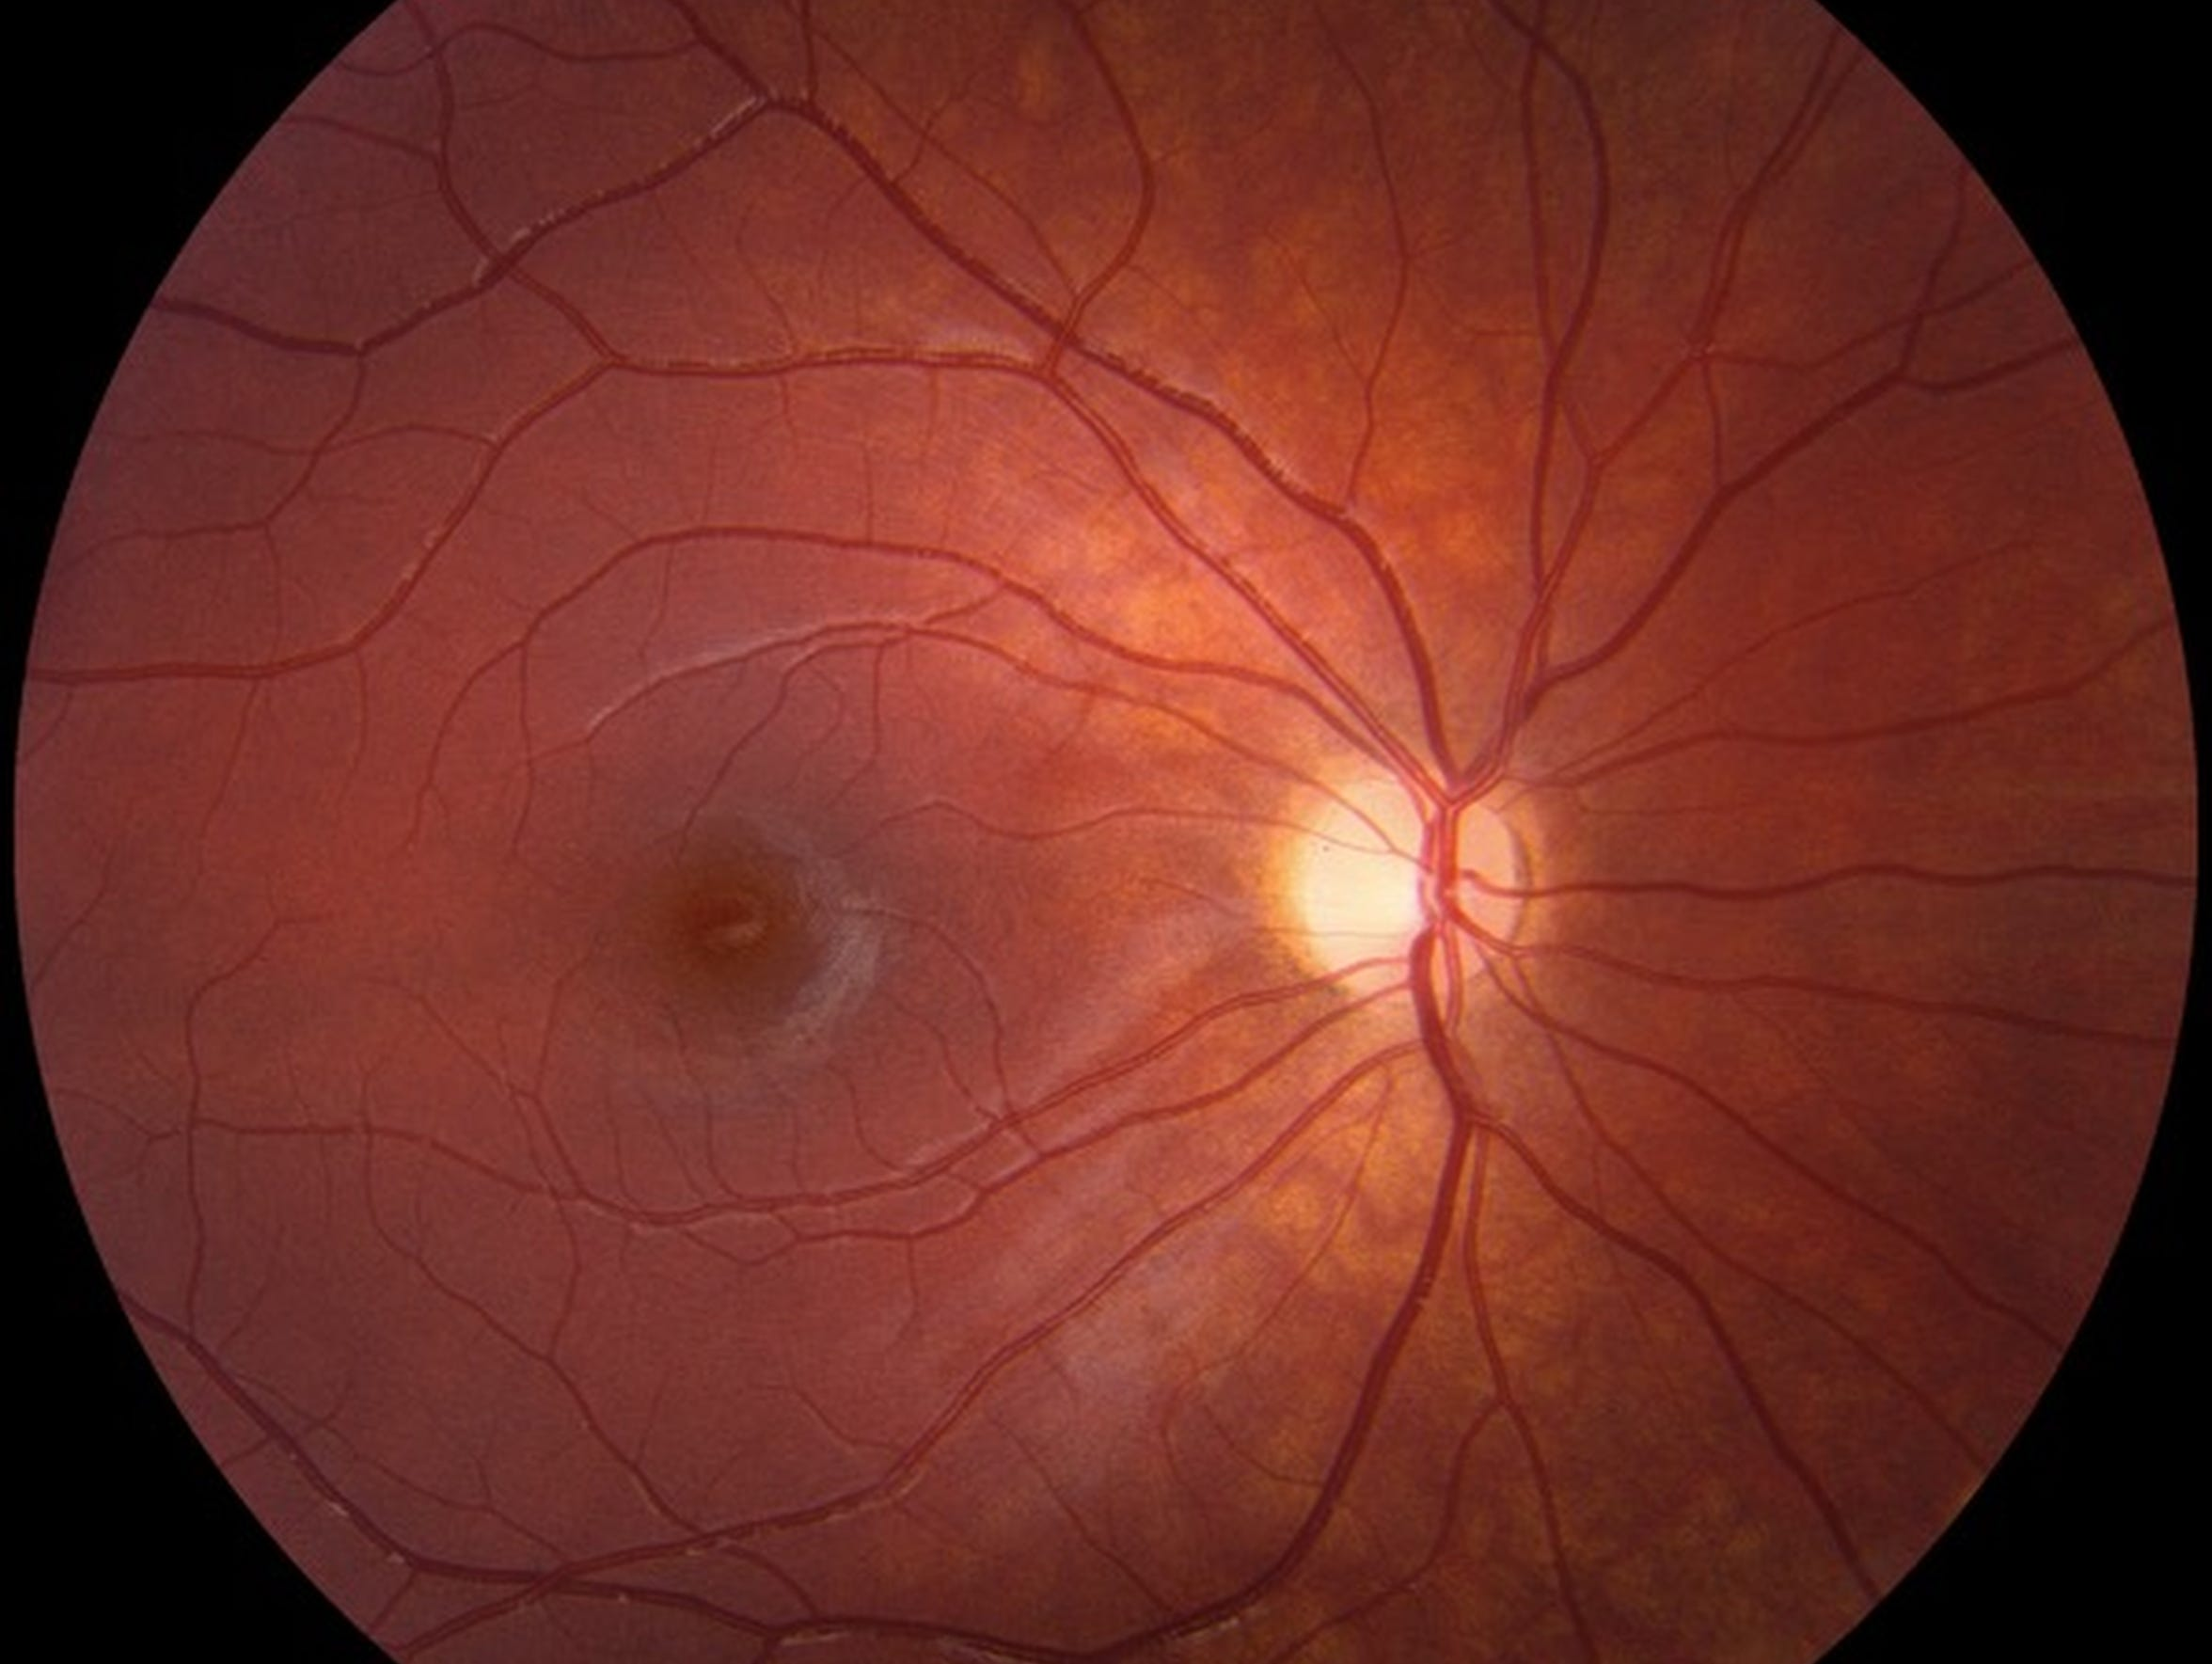 An image of Alexis' optic nerve. One side of the nerve